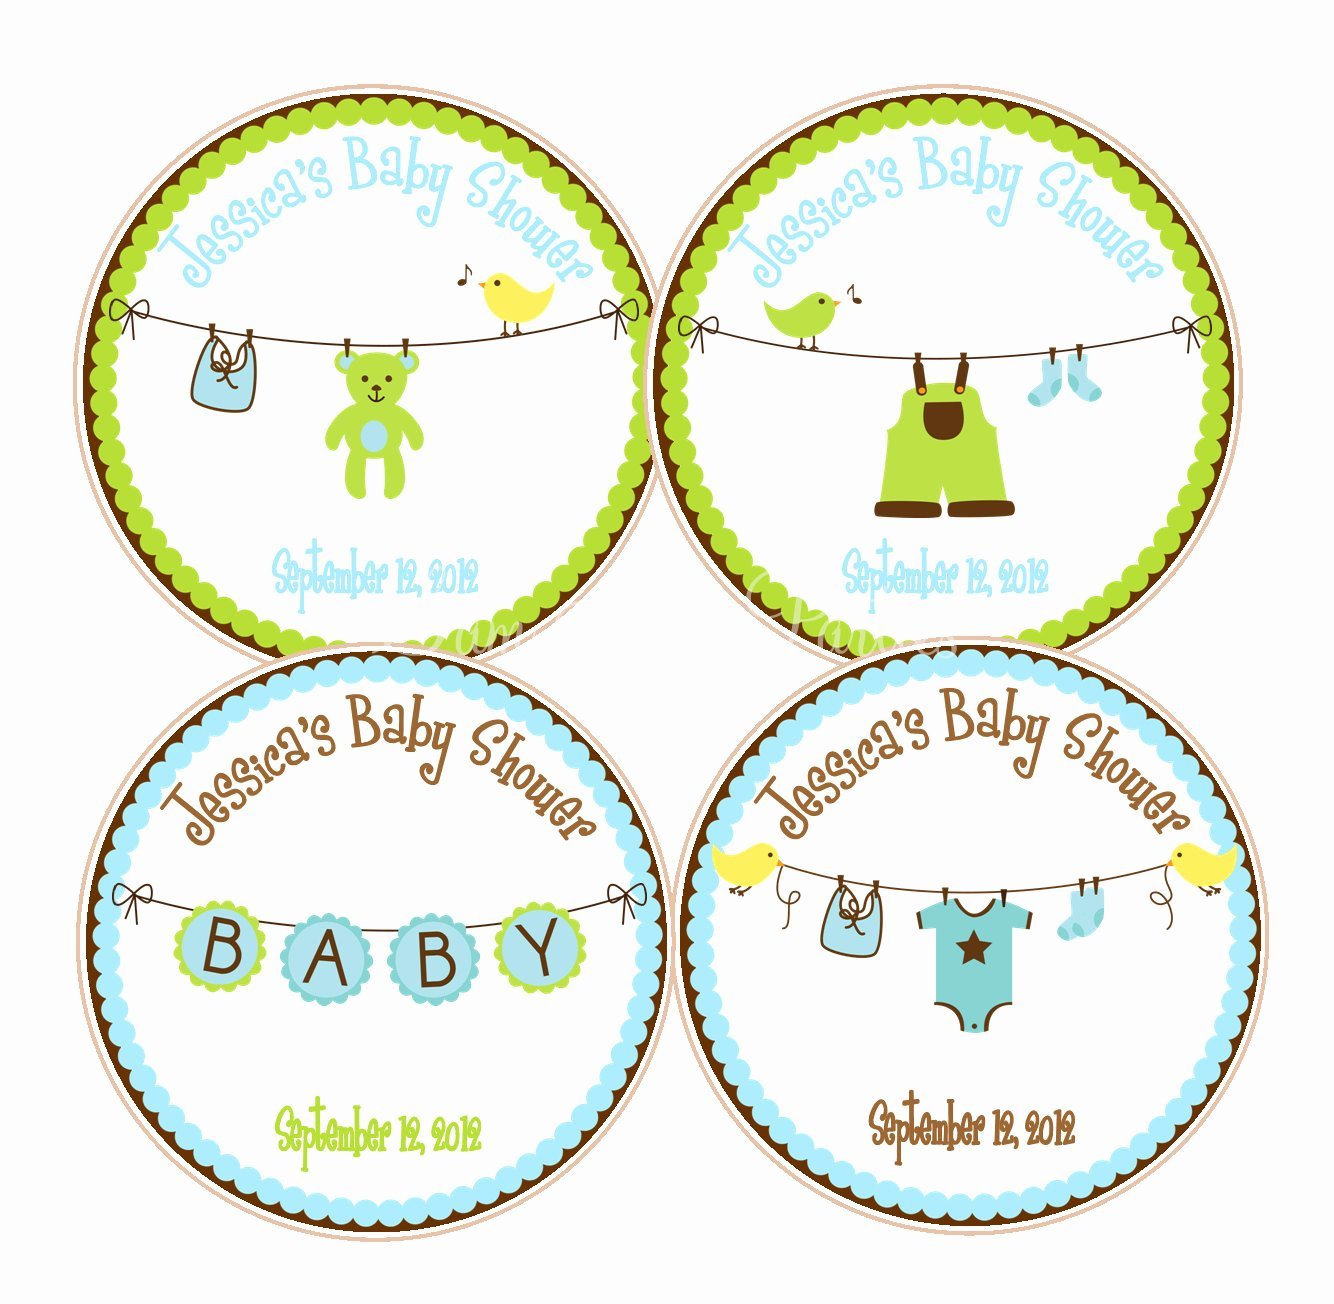 Baby Shower Gift Tags Printable Unique Cute Boy Baby Shower Favor Tags Baby Showers or 1st Birthday